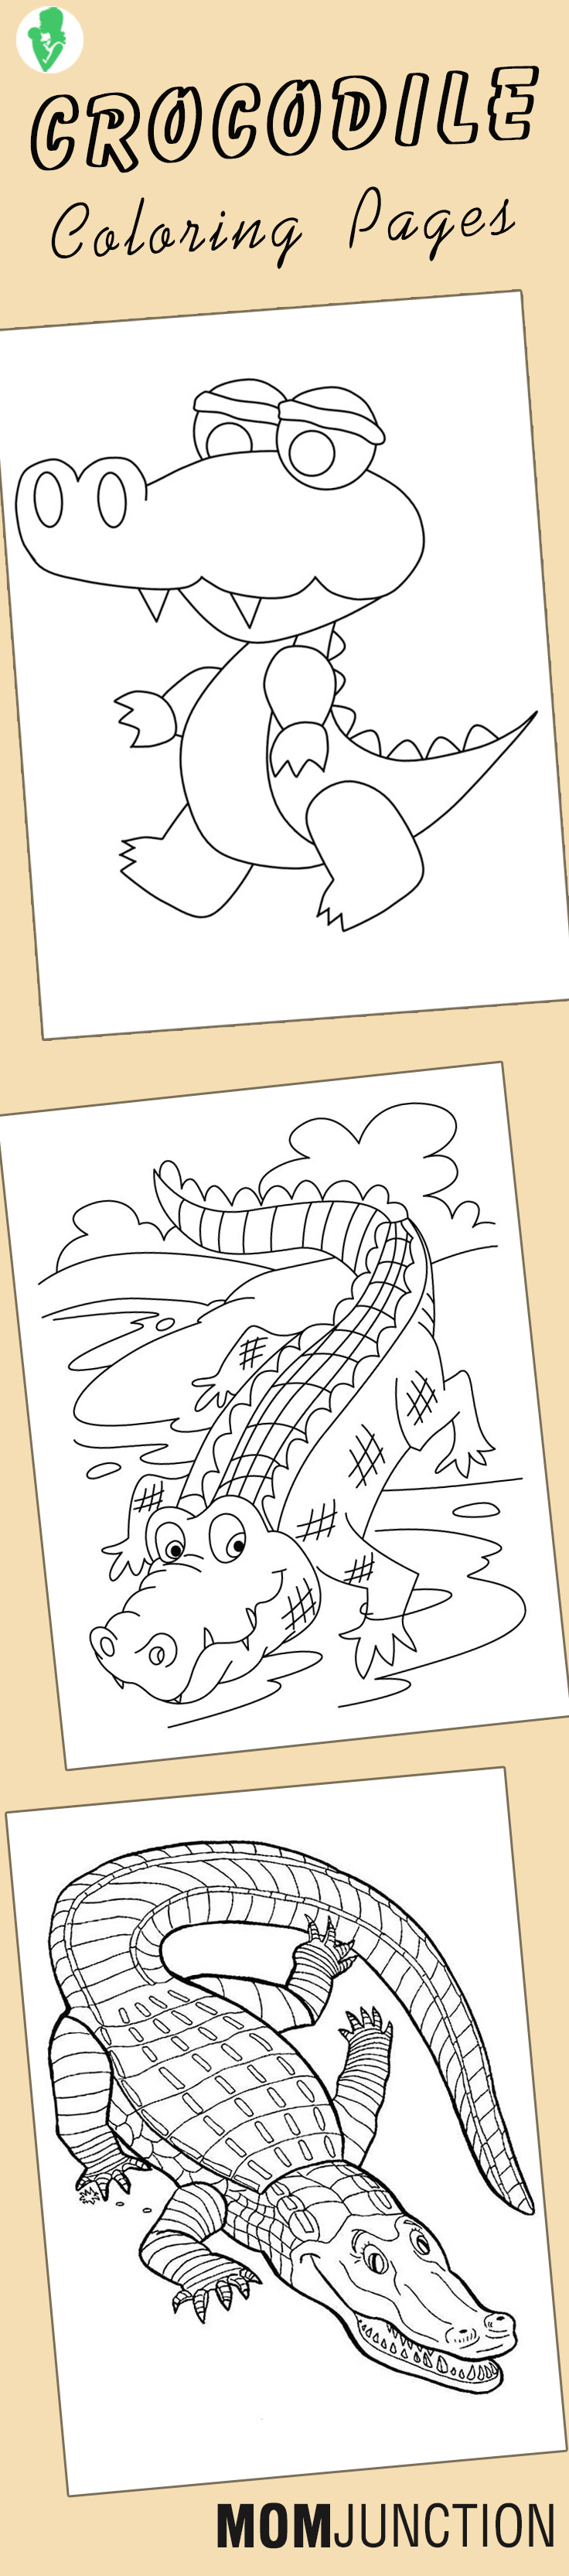 Momjunction Tractor Coloring PagesTractorPrintable Coloring